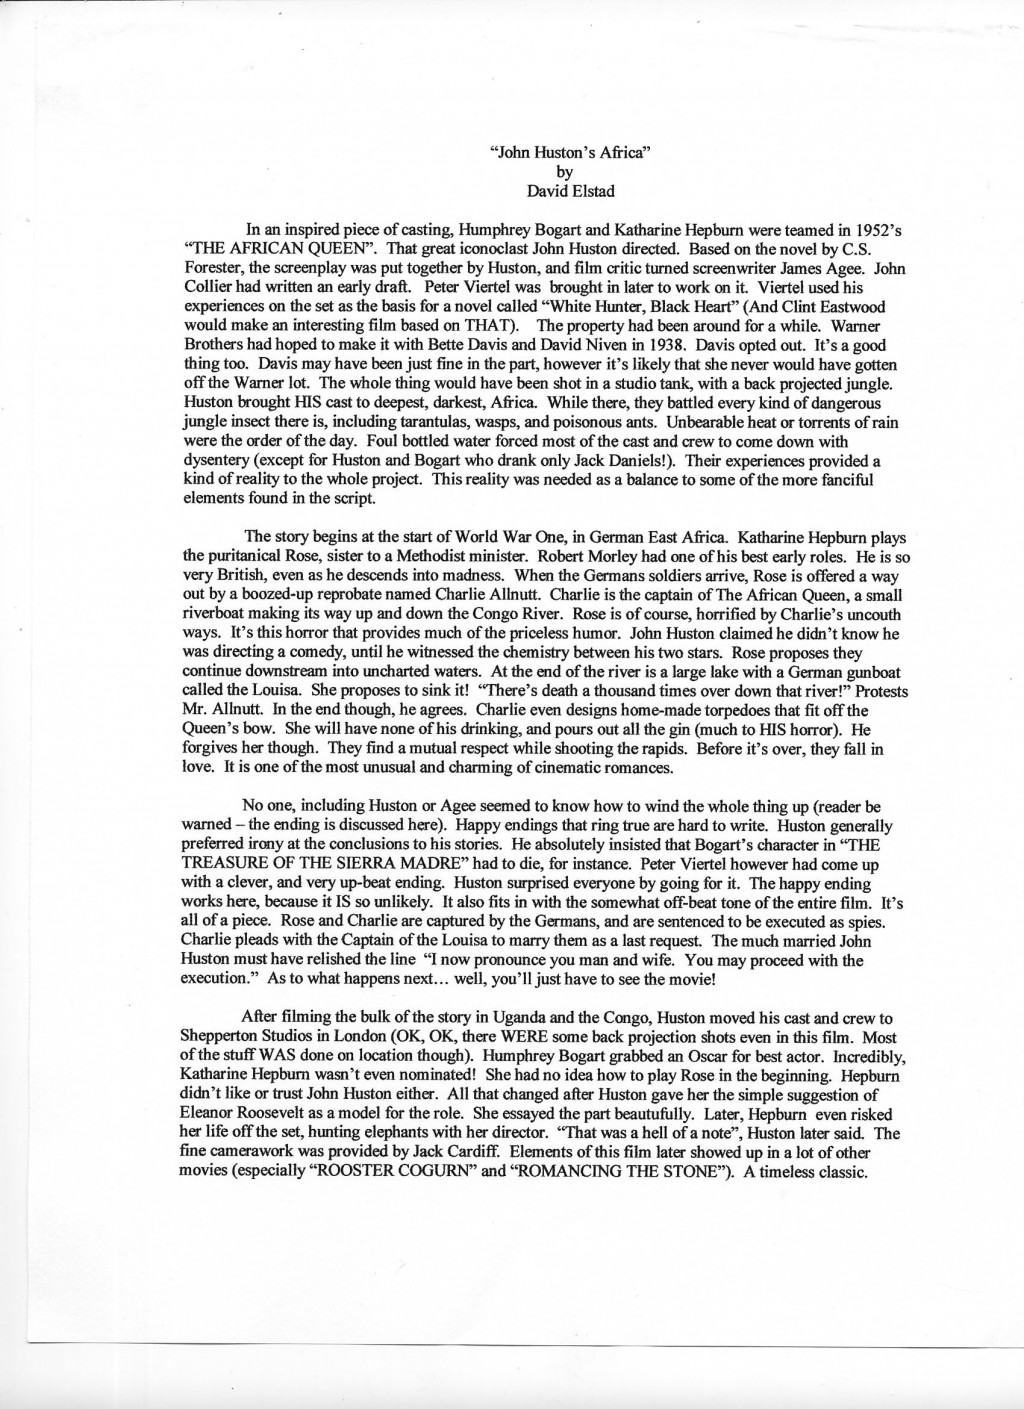 007 Character Essay Example Wondrous Introduction Lord Of The Flies Plans Sketch Rubric Large